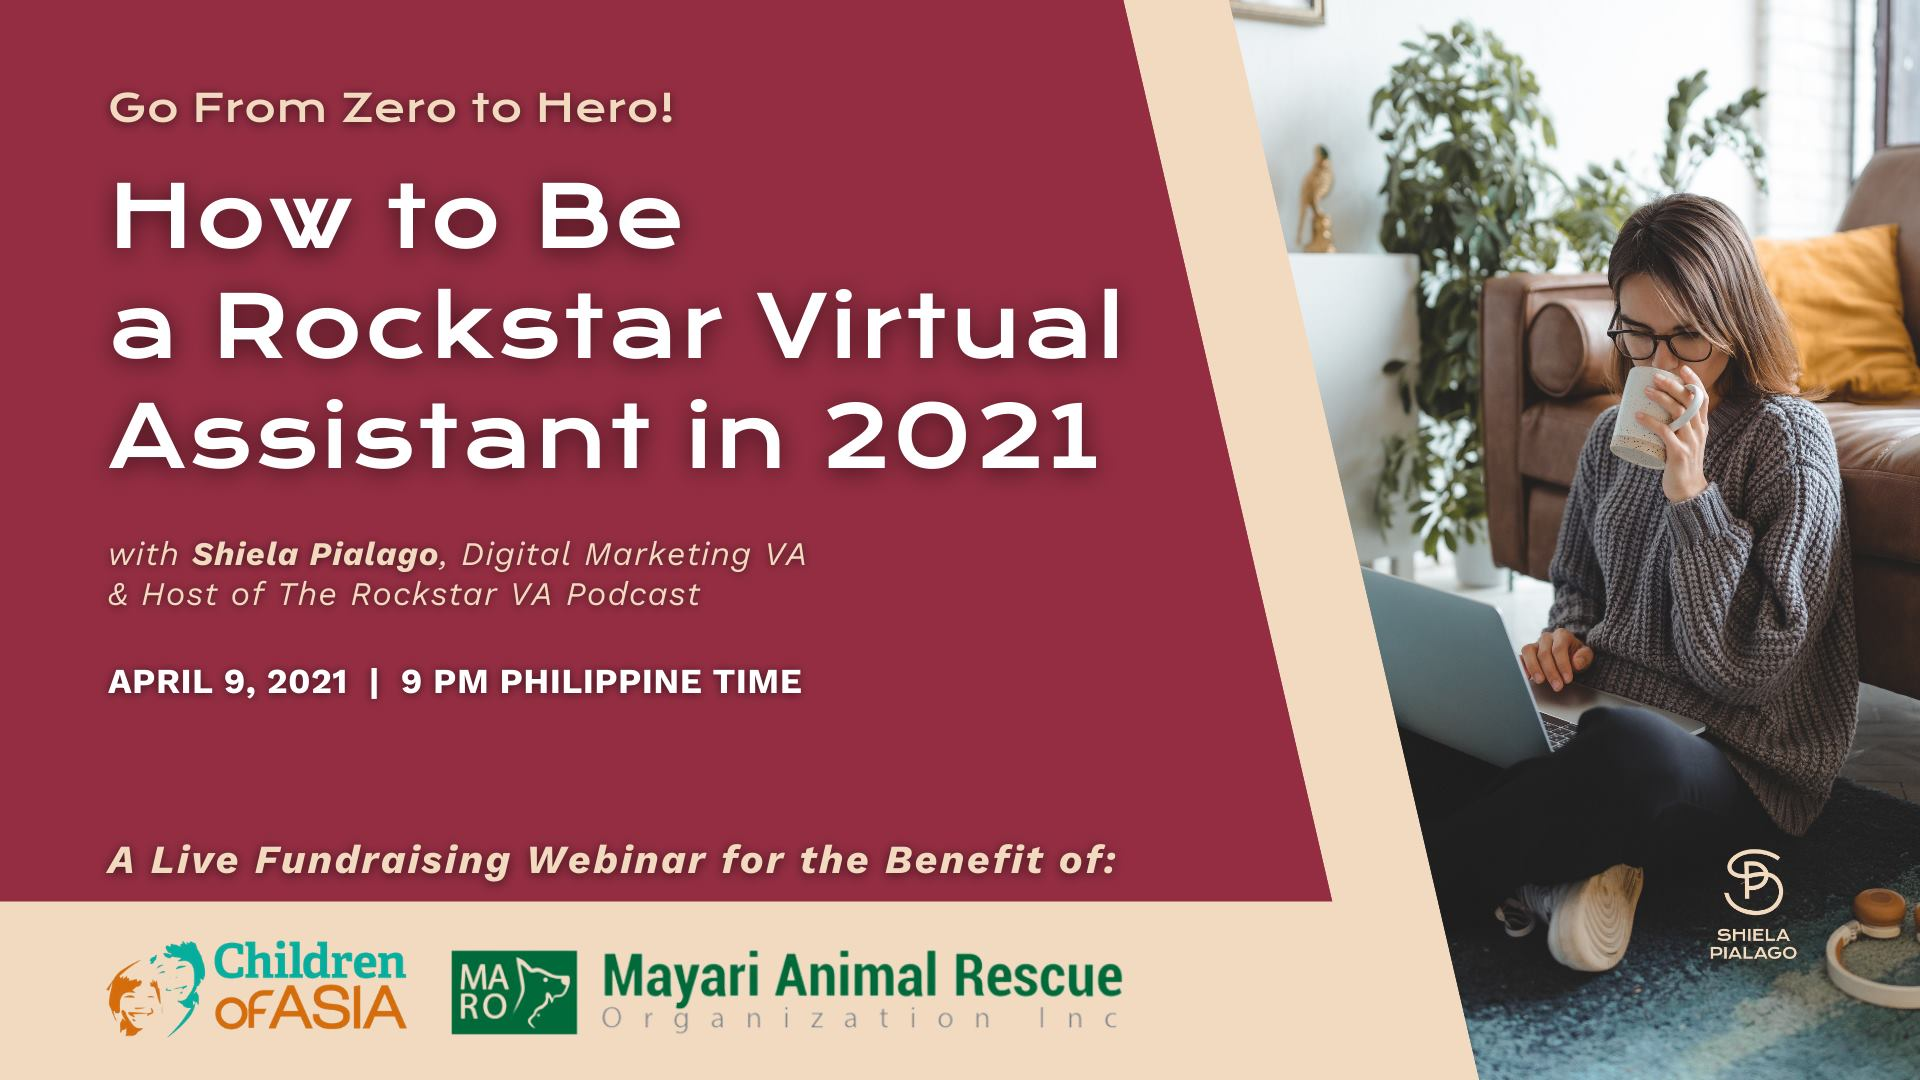 How To Be a Rockstar Virtual Assistant in 2021